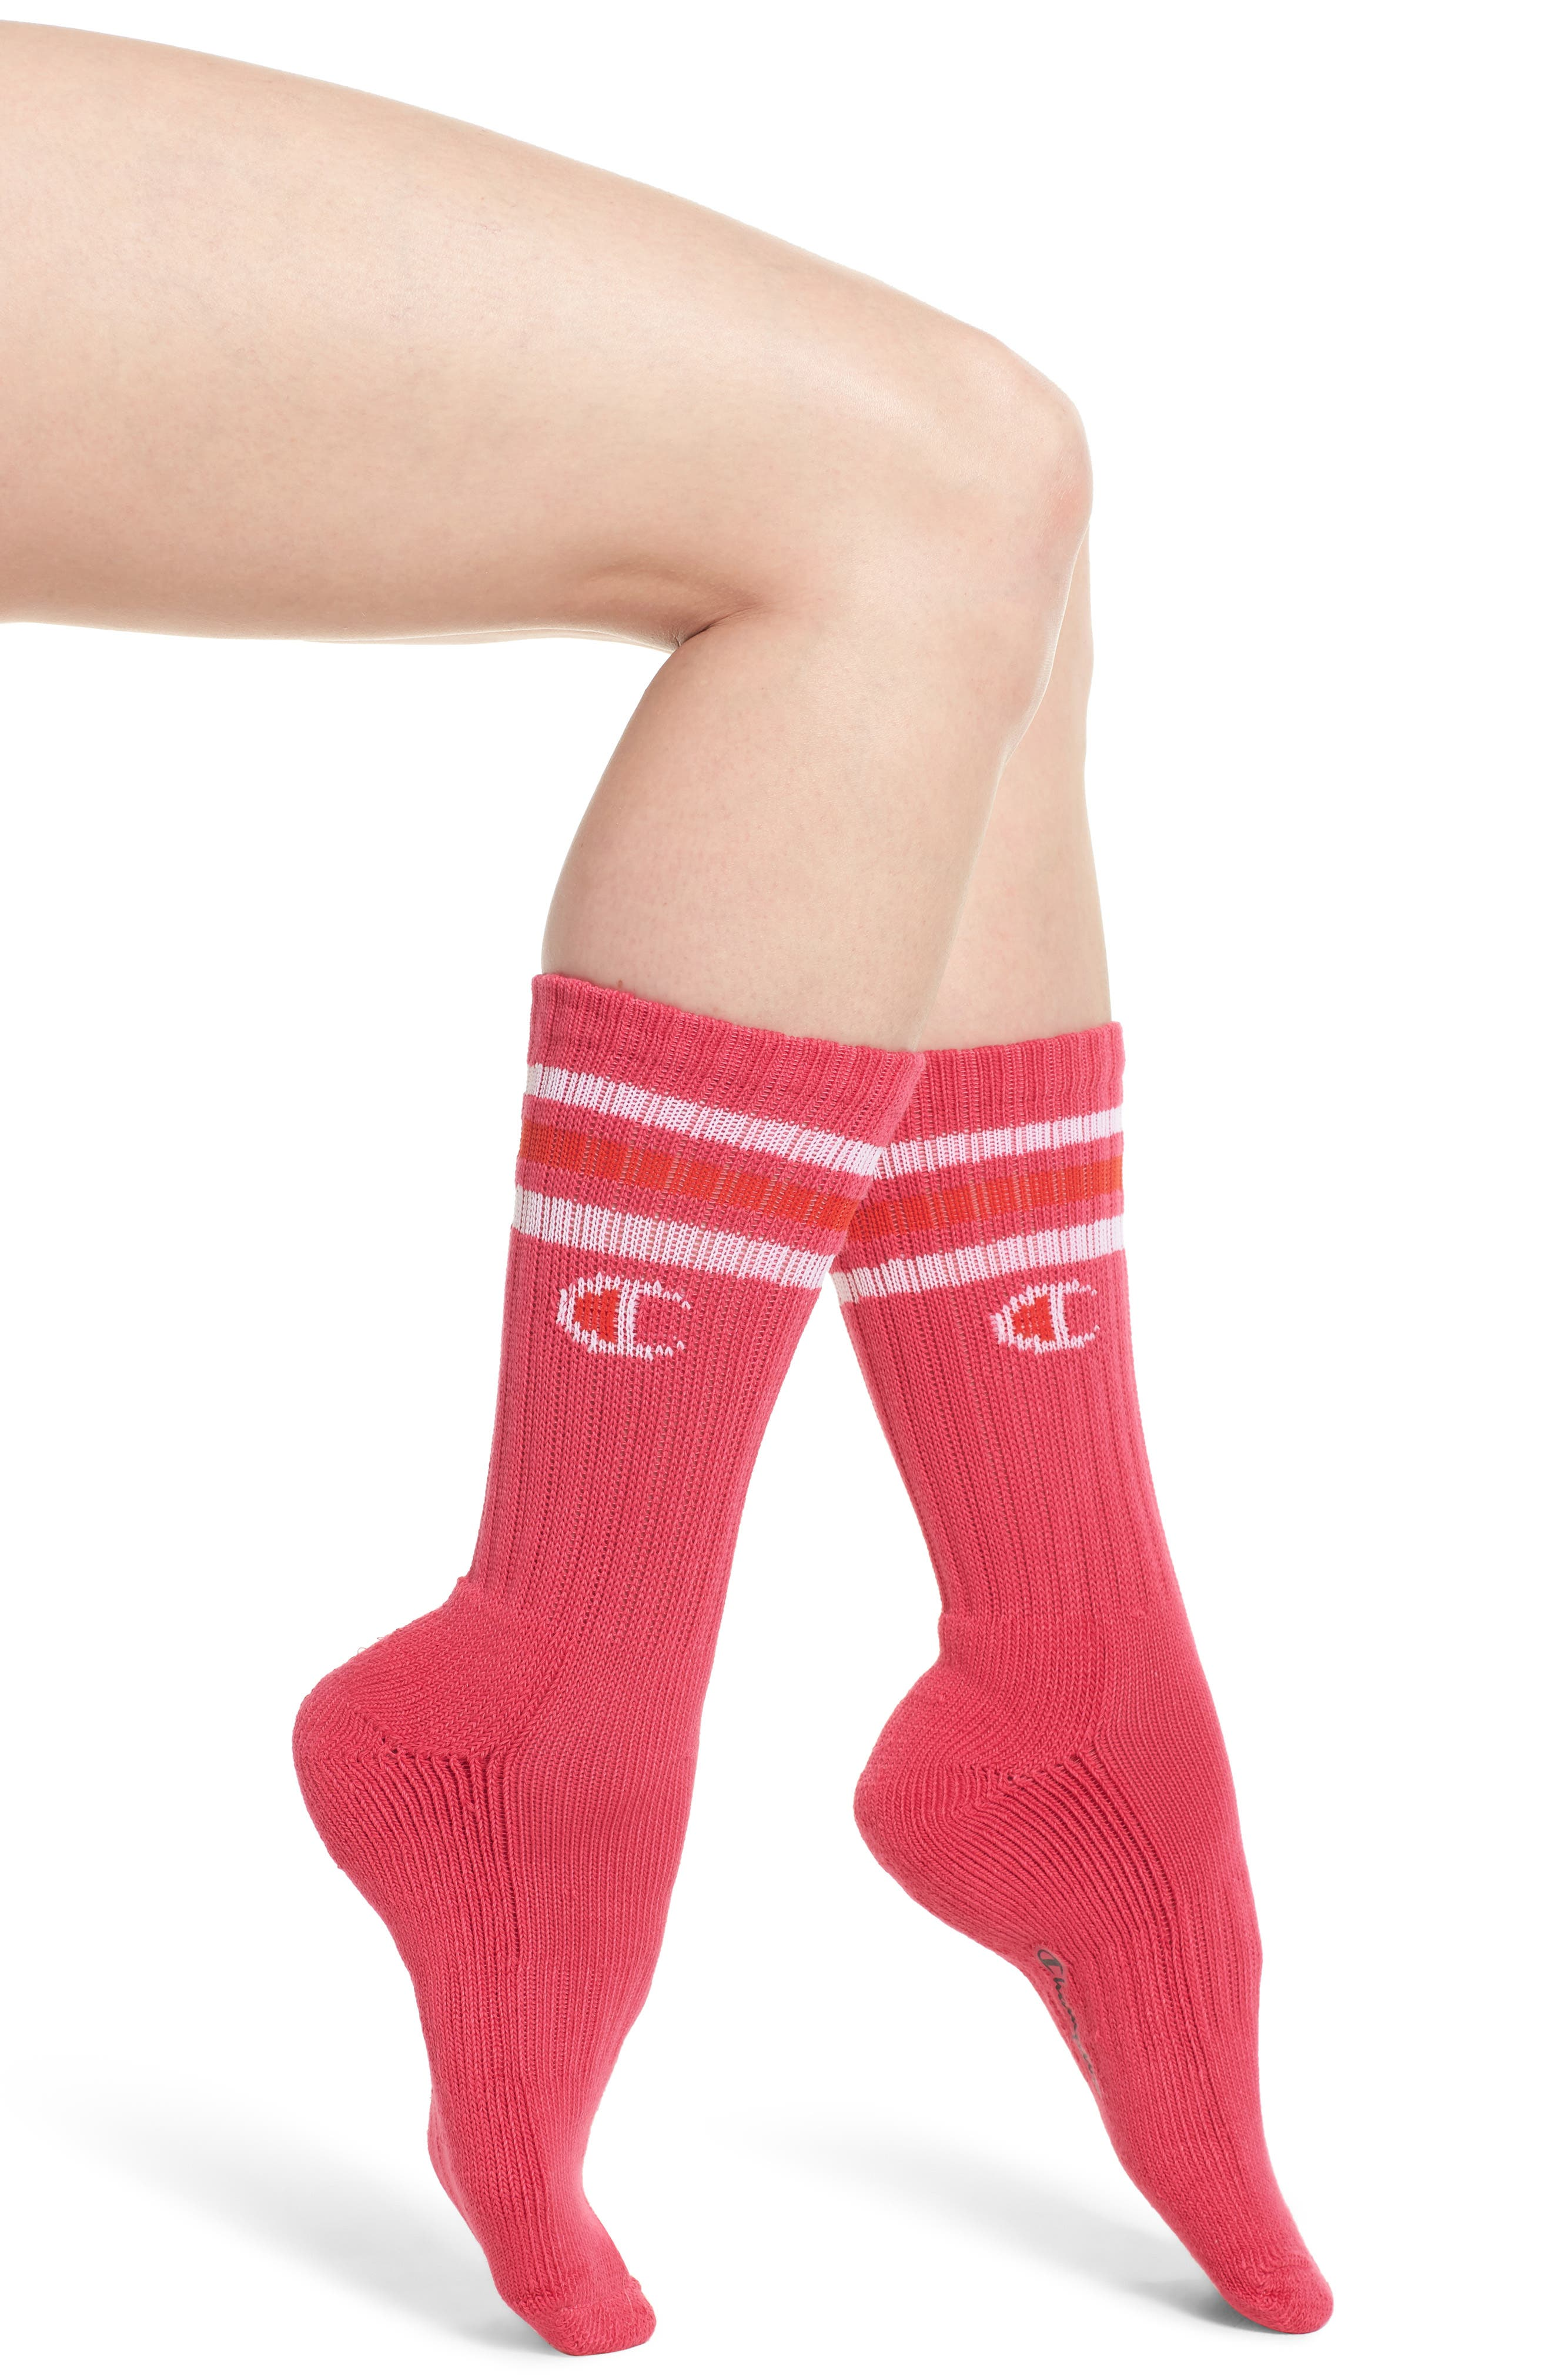 Big C Crew Socks,                         Main,                         color, 650